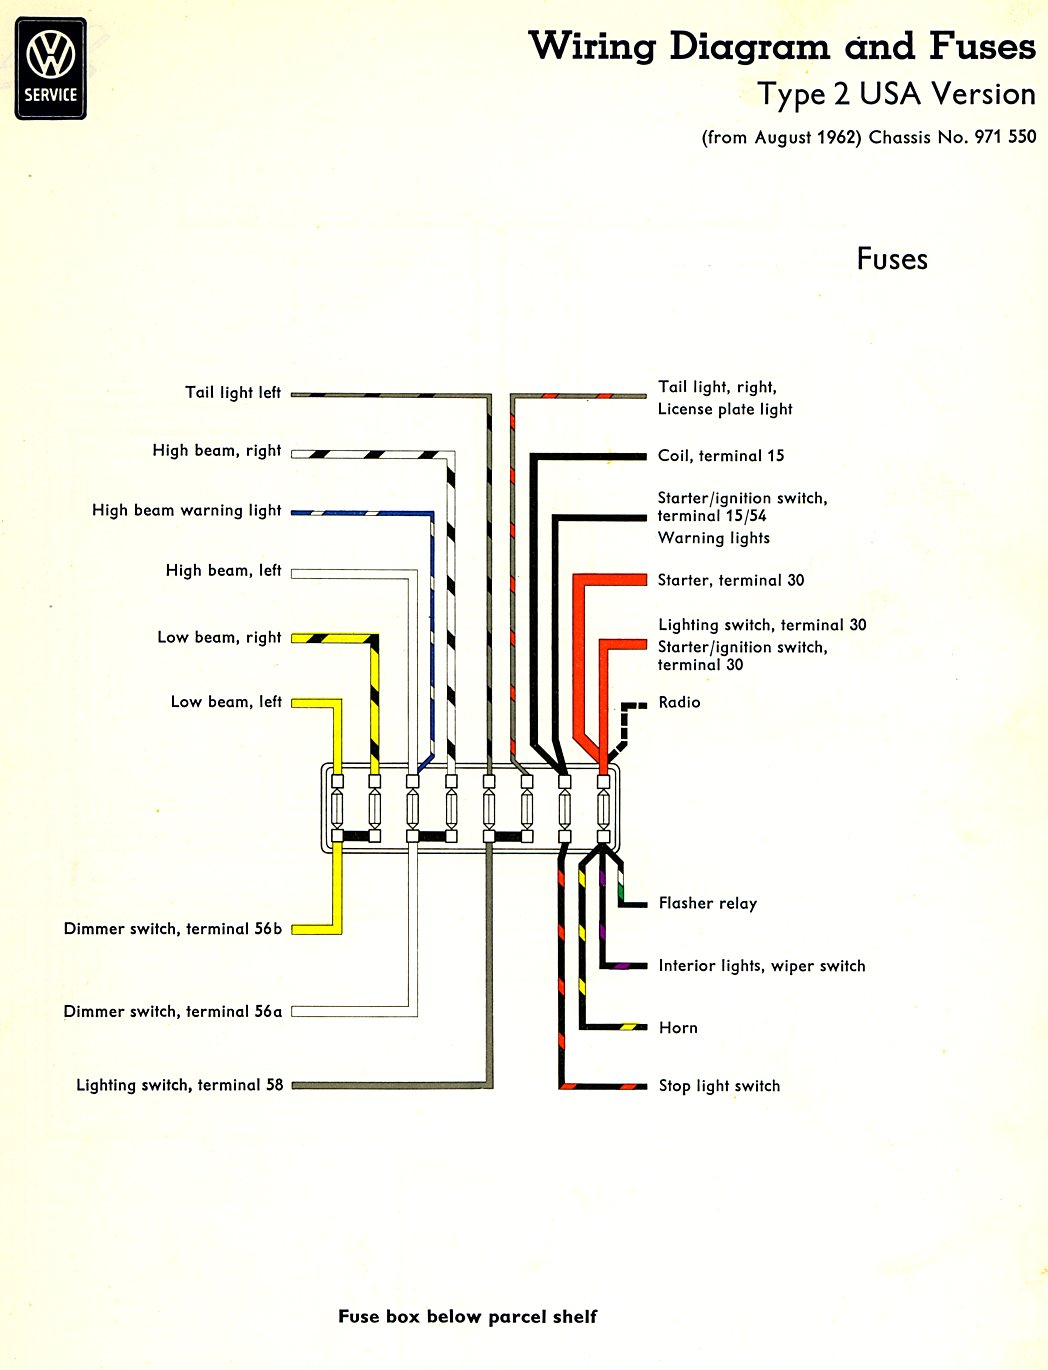 Generator Wiring Fuse Box Not Lossing Diagram Panel Furthermore To House Thesamba Com Type 2 Diagrams Rh Home Circuit